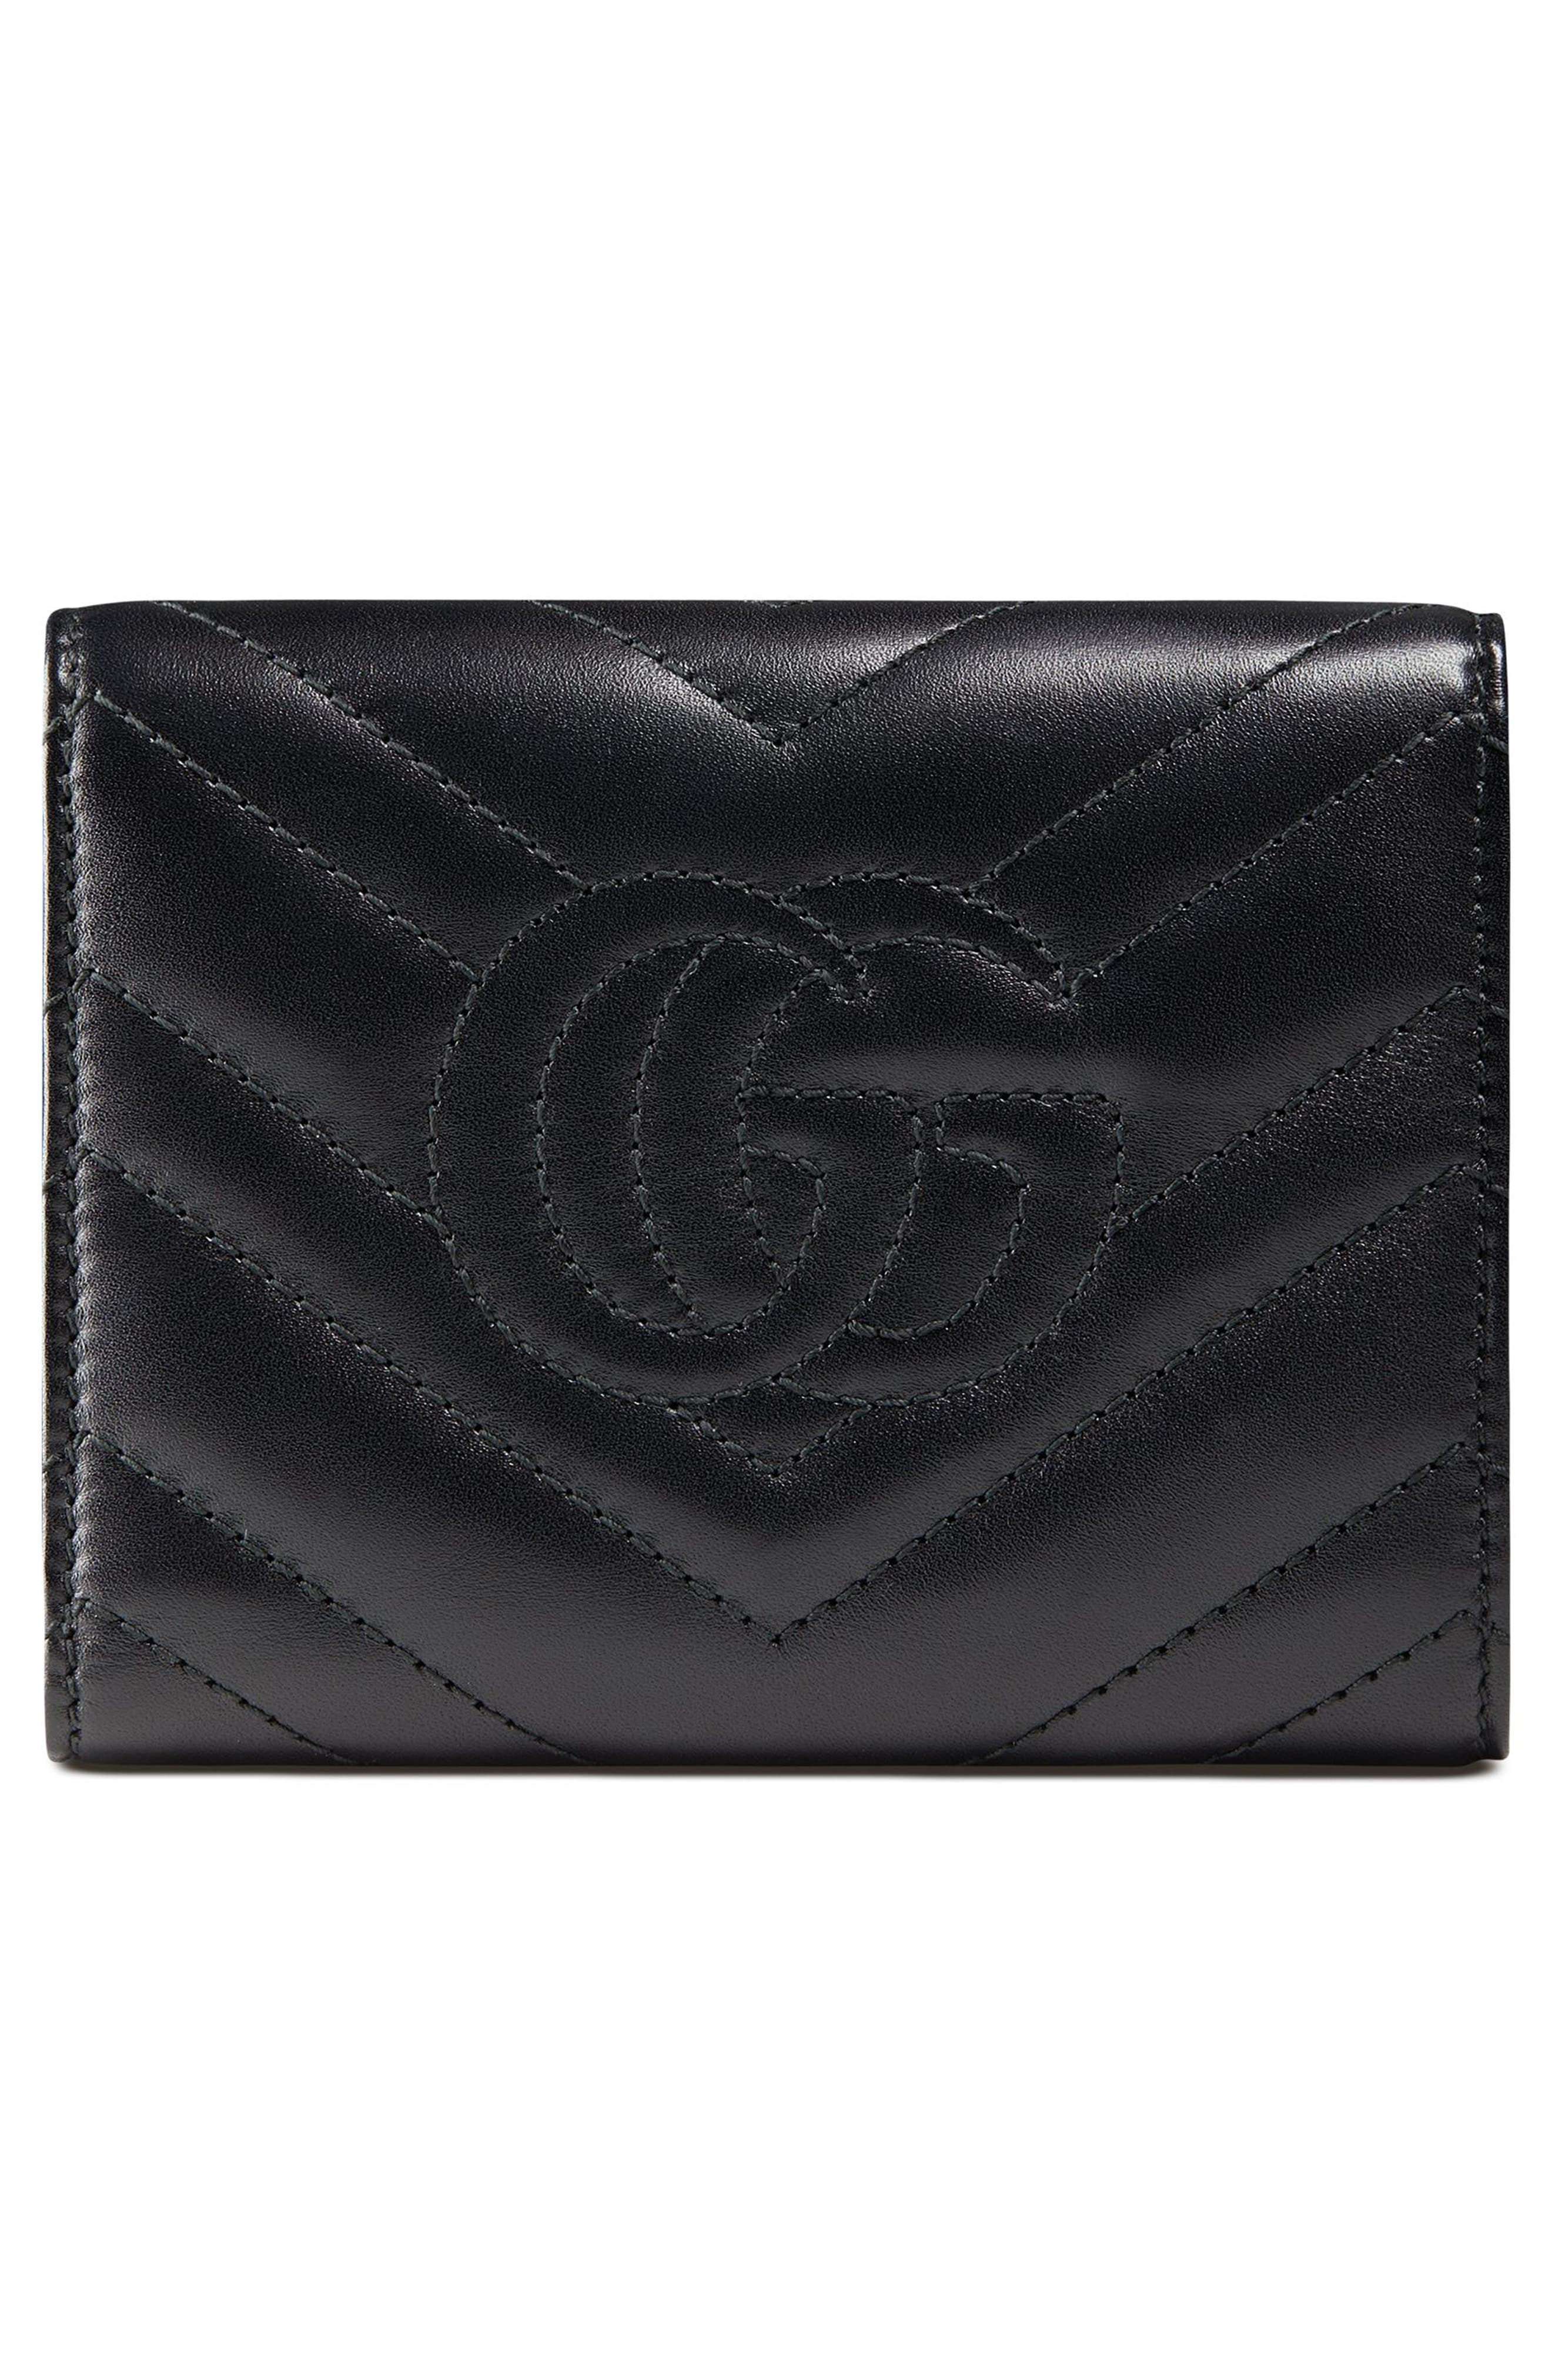 Medium Marmont 2.0 Leather Bifold Wallet,                             Alternate thumbnail 3, color,                             NERO